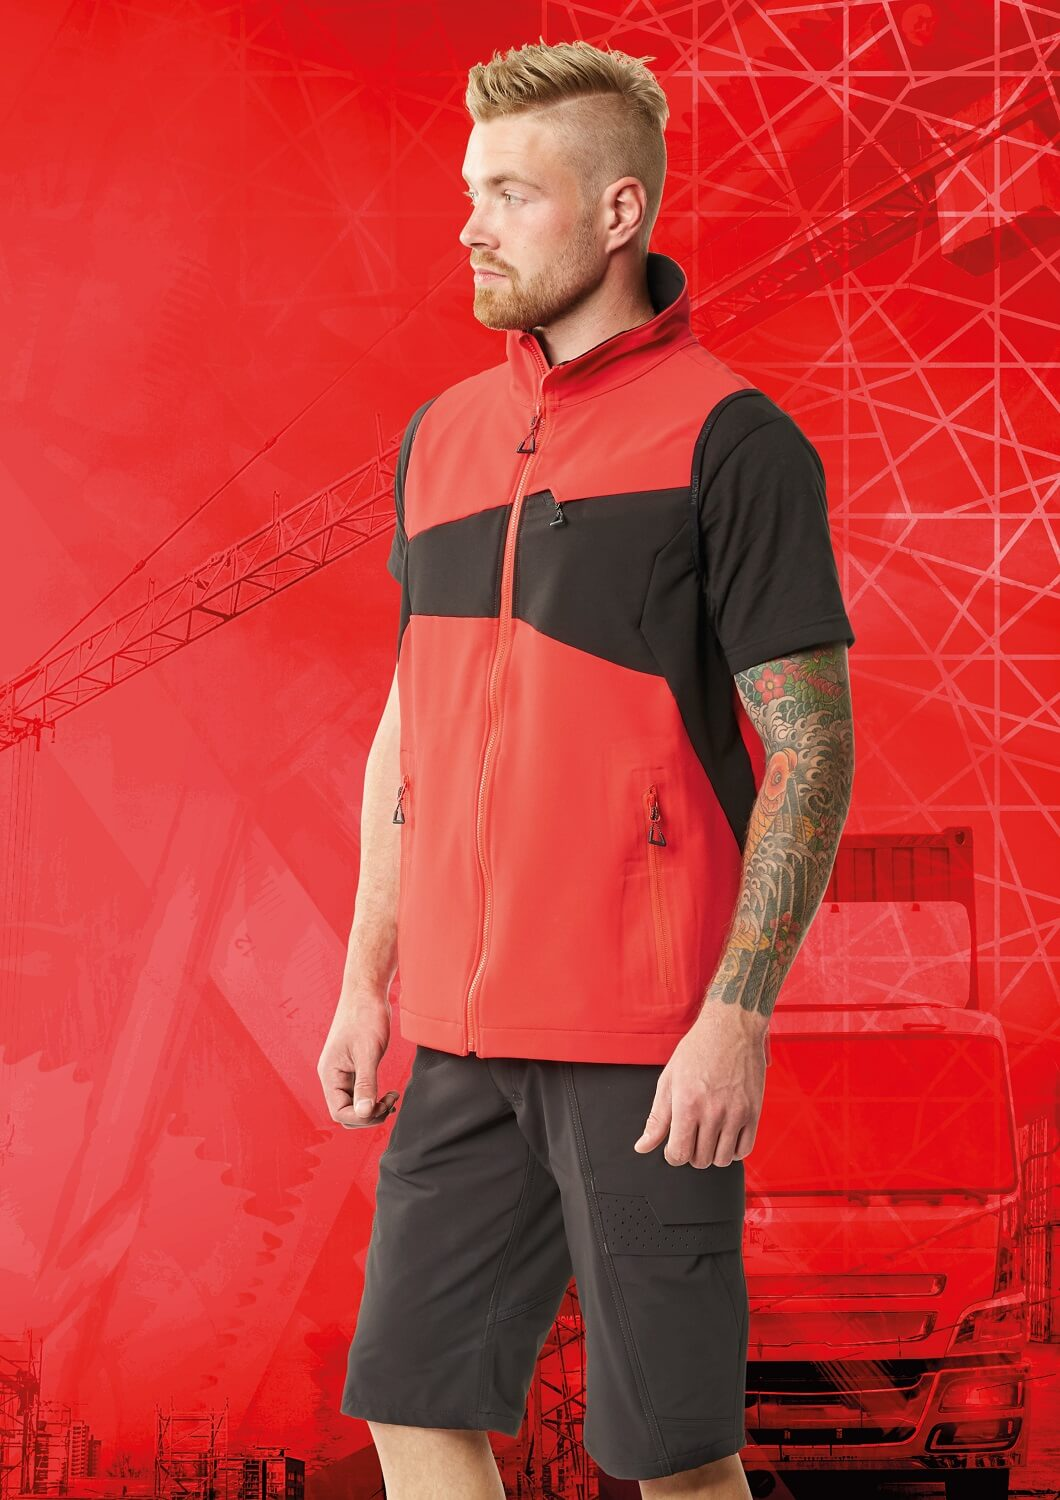 Man - Work Gilet & Shorts - MASCOT® ACCELERATE - Red